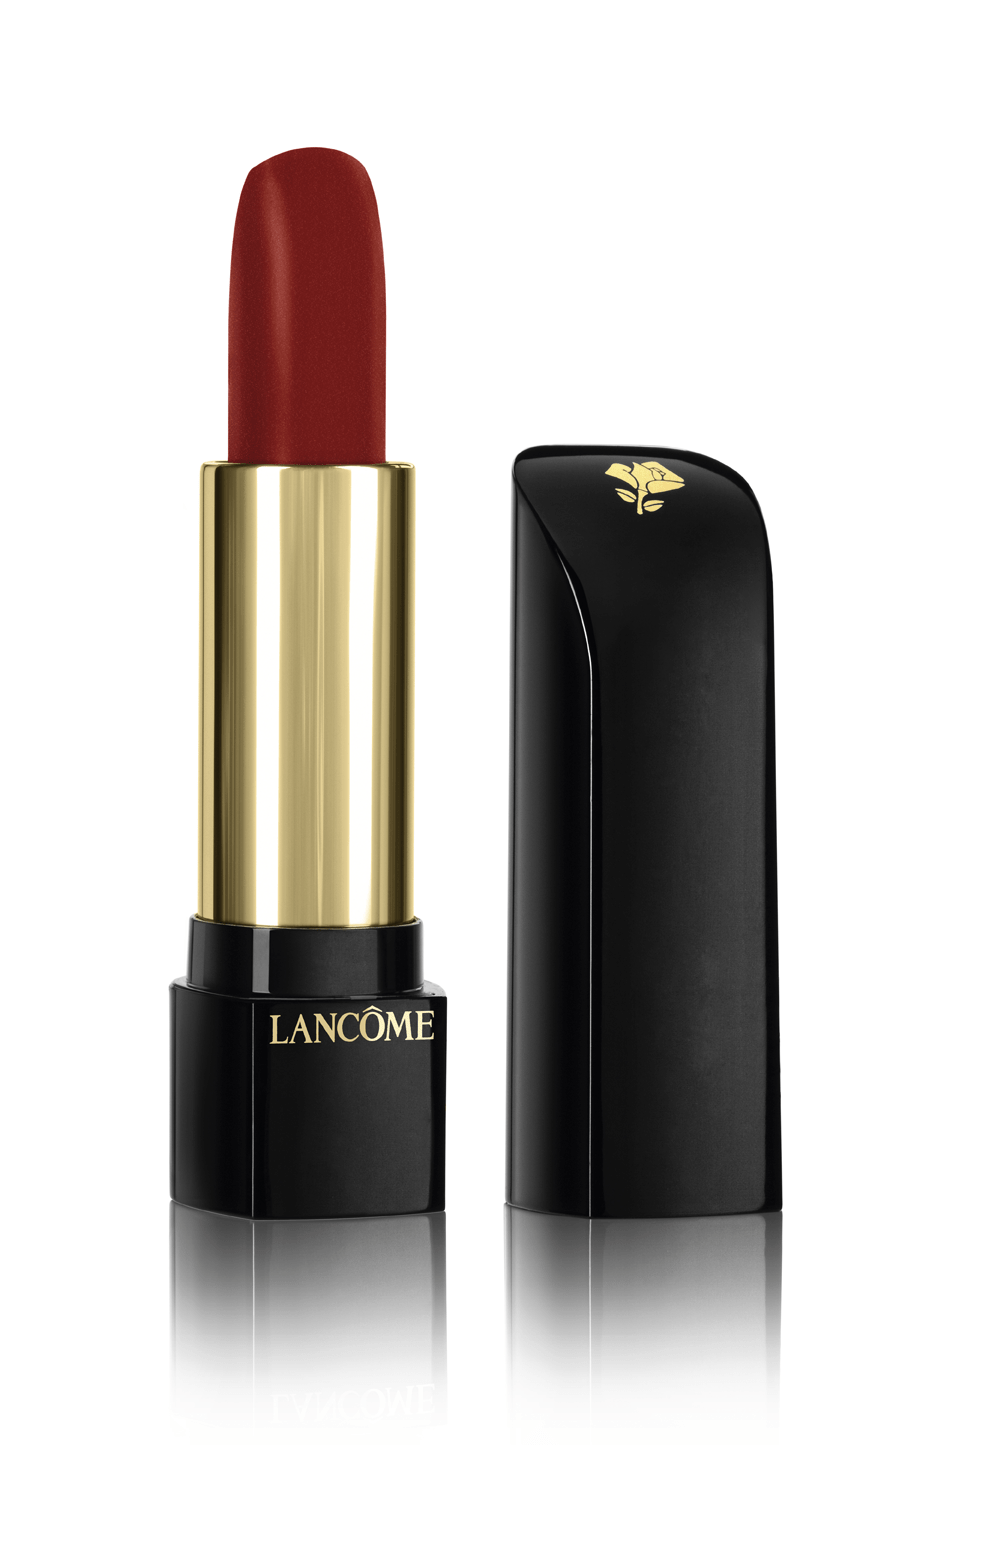 LANCOME ABSOLU NU OUVERT ROUGE 181 TOPAZE EXTASE